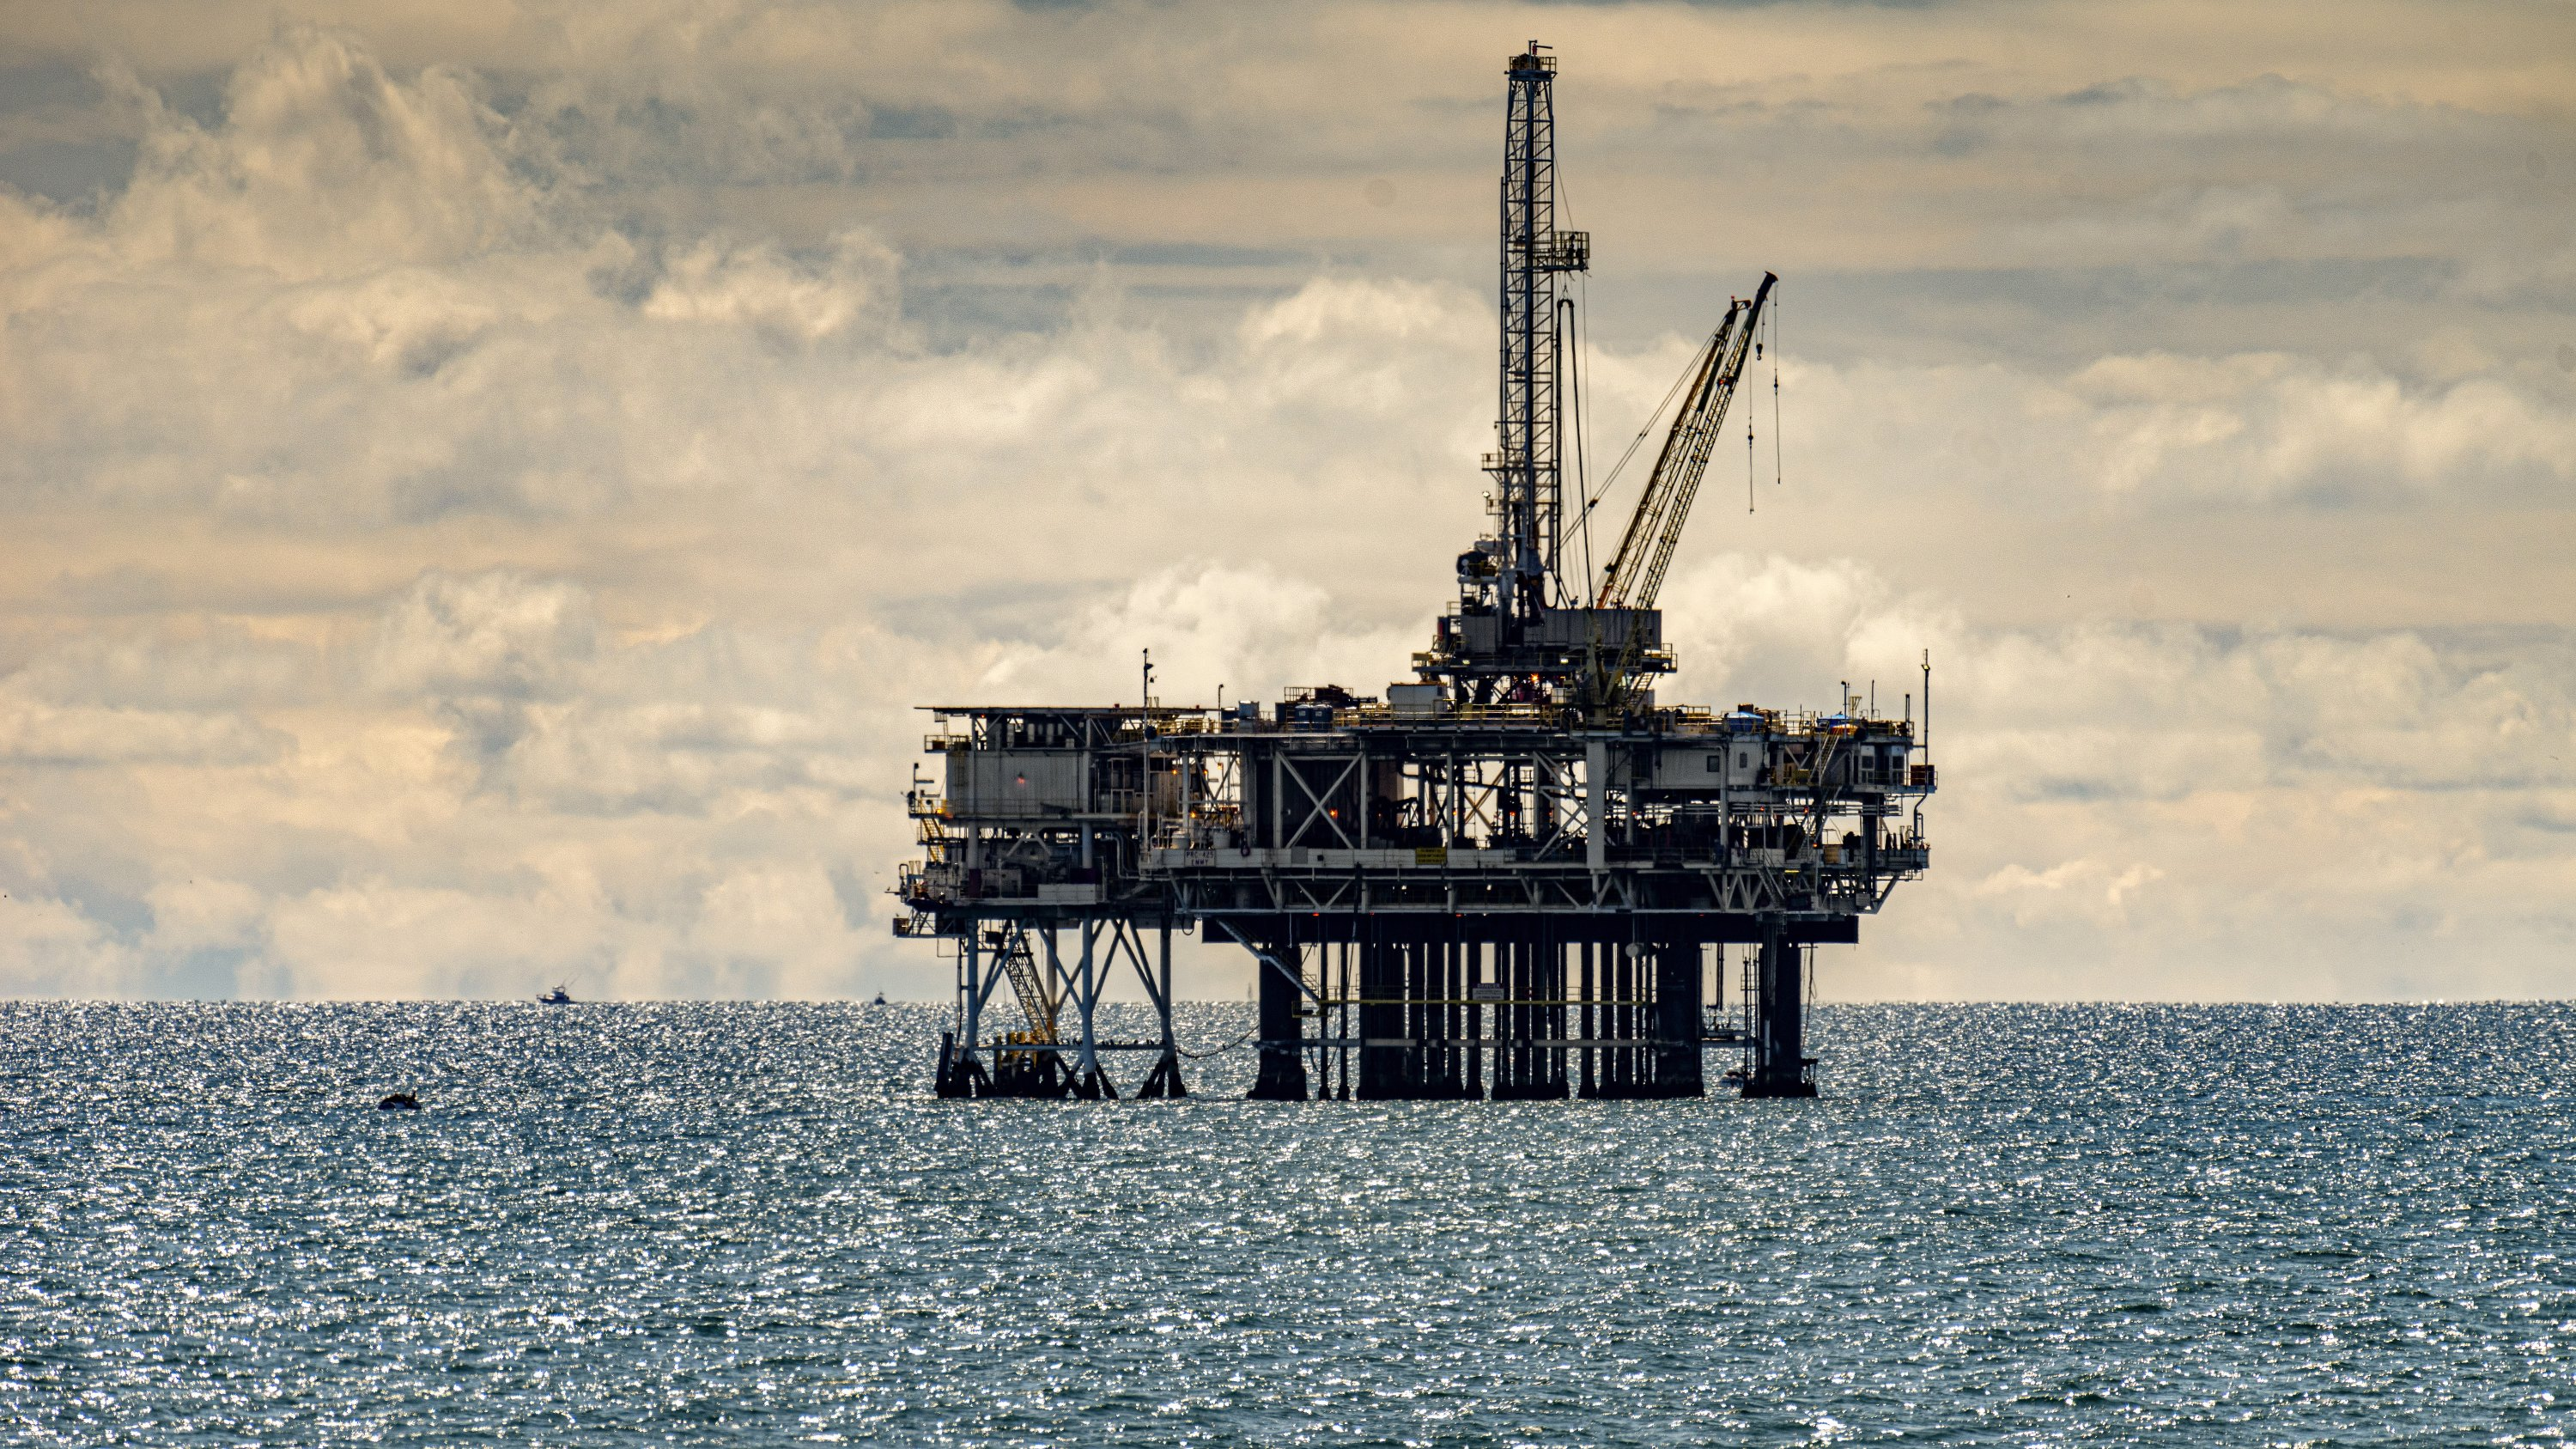 Implications of US' growing power in global oil politics